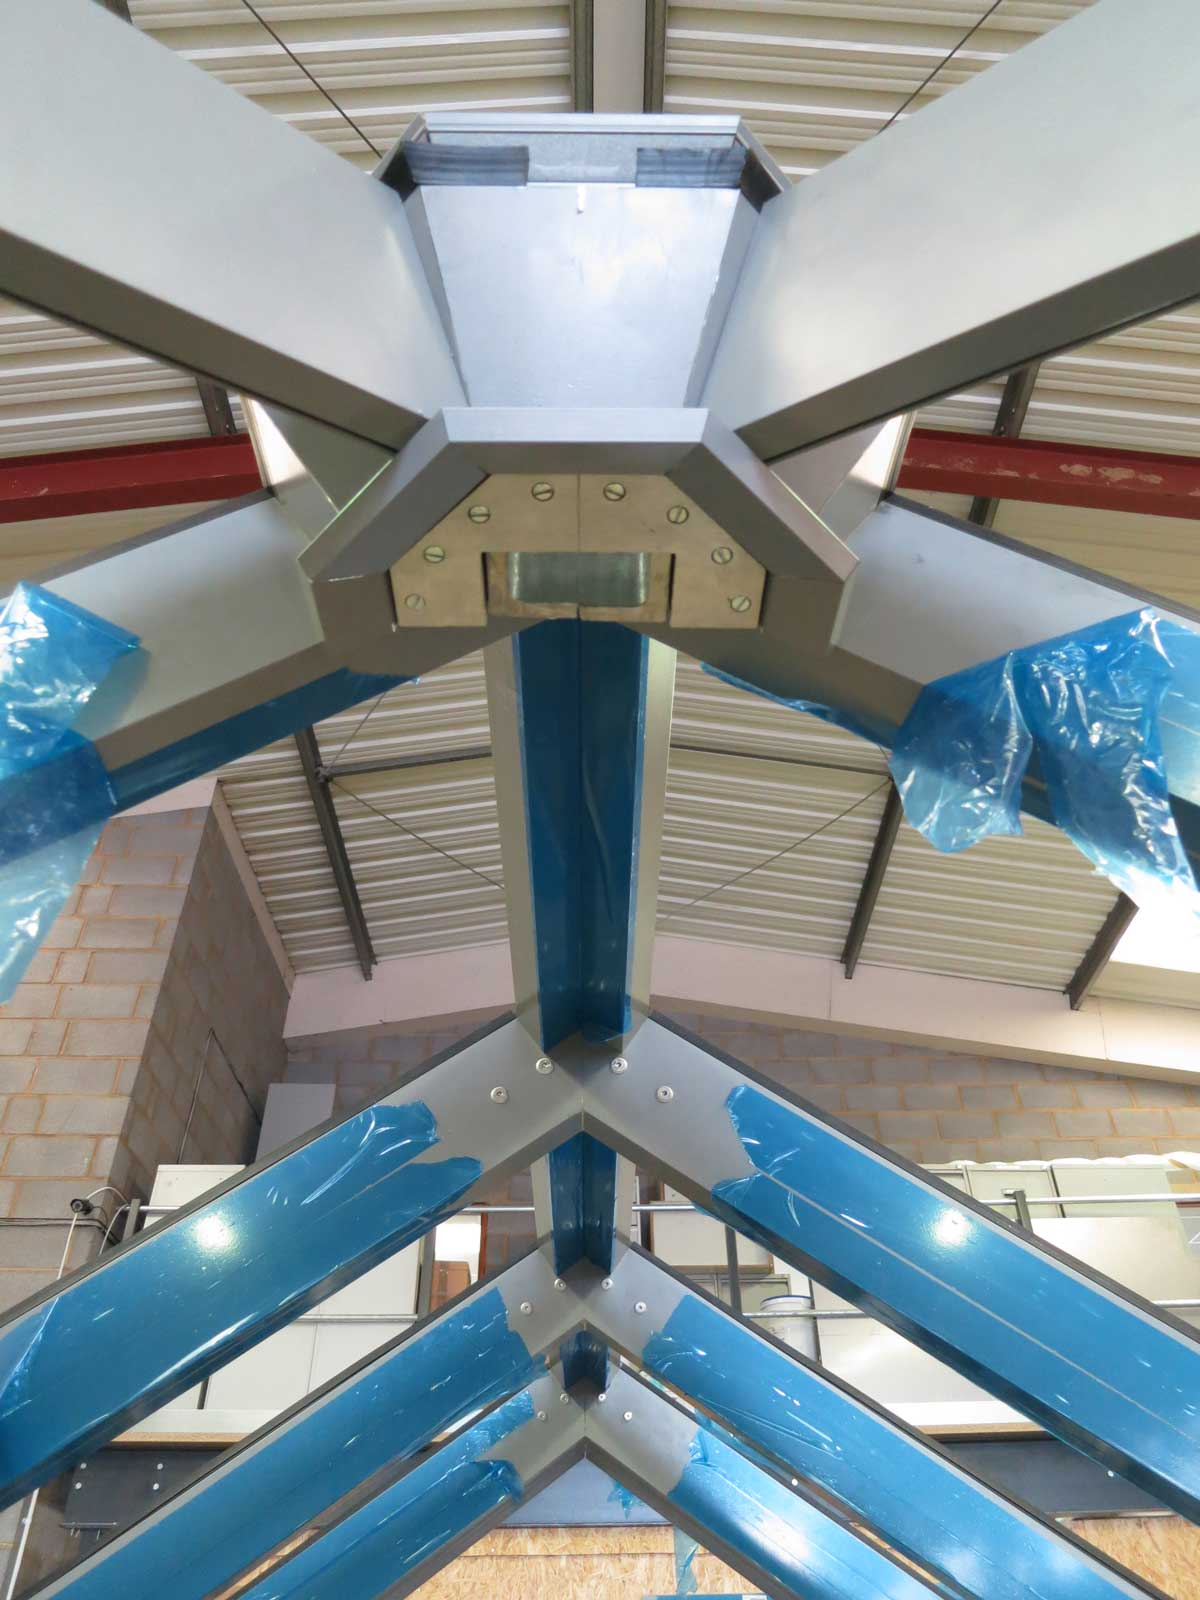 Conservatory roof is made using Schuco CMC50.